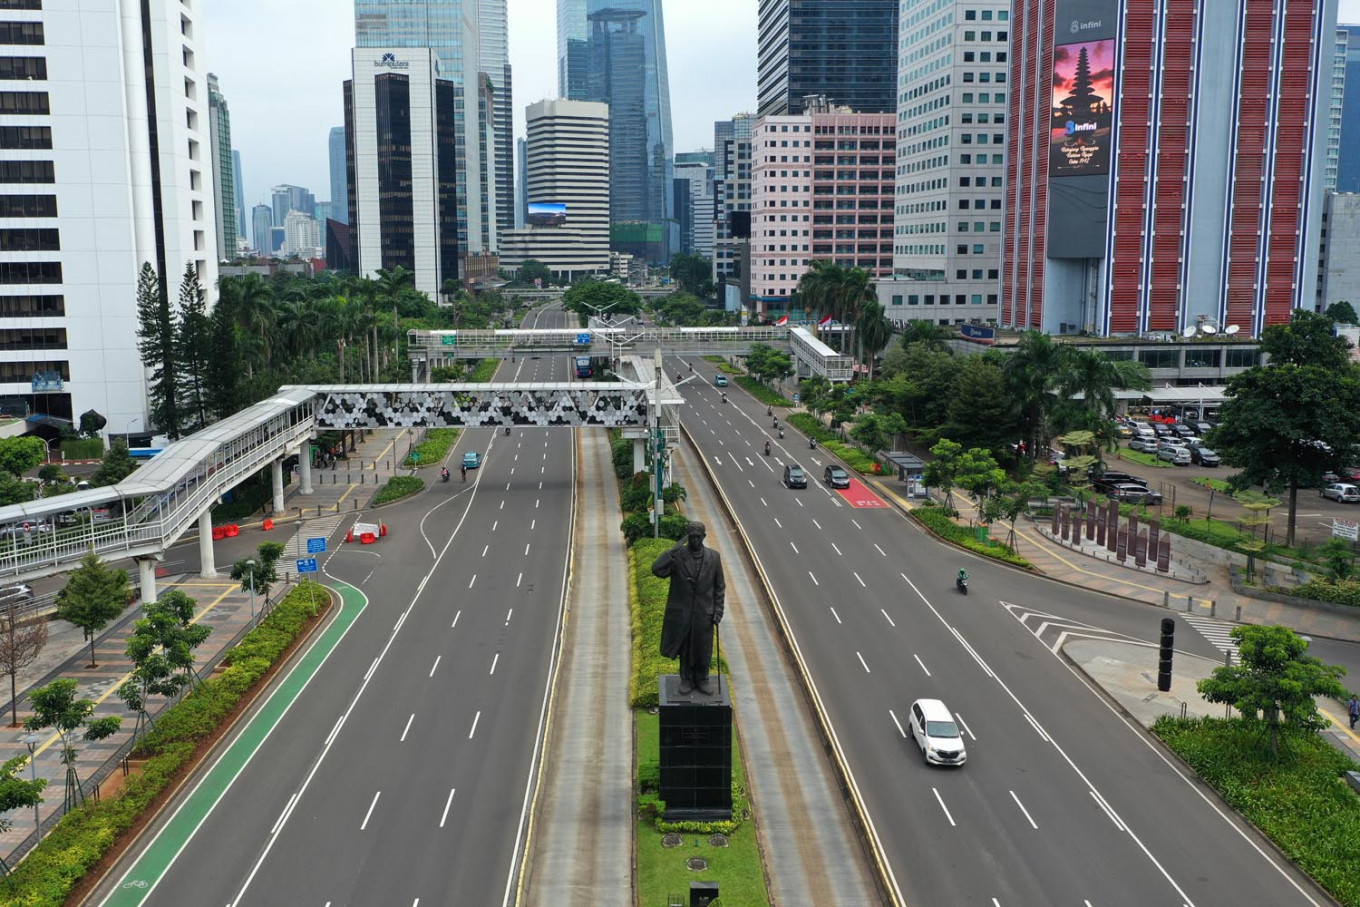 Jakarta air quality improves as people commute less, rainfall intensifies